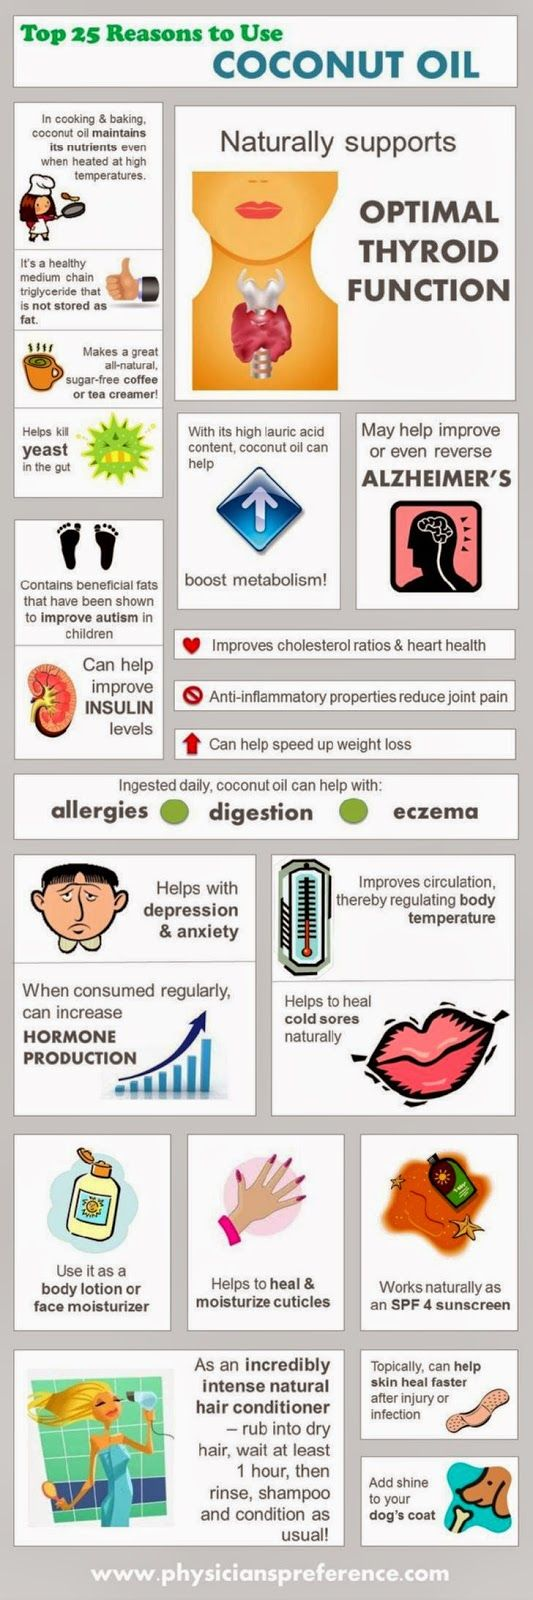 Top 25 Reasons to start using coconut oil! I love coconut oil I use as a makeup remover, lotion, I even eat it! :)